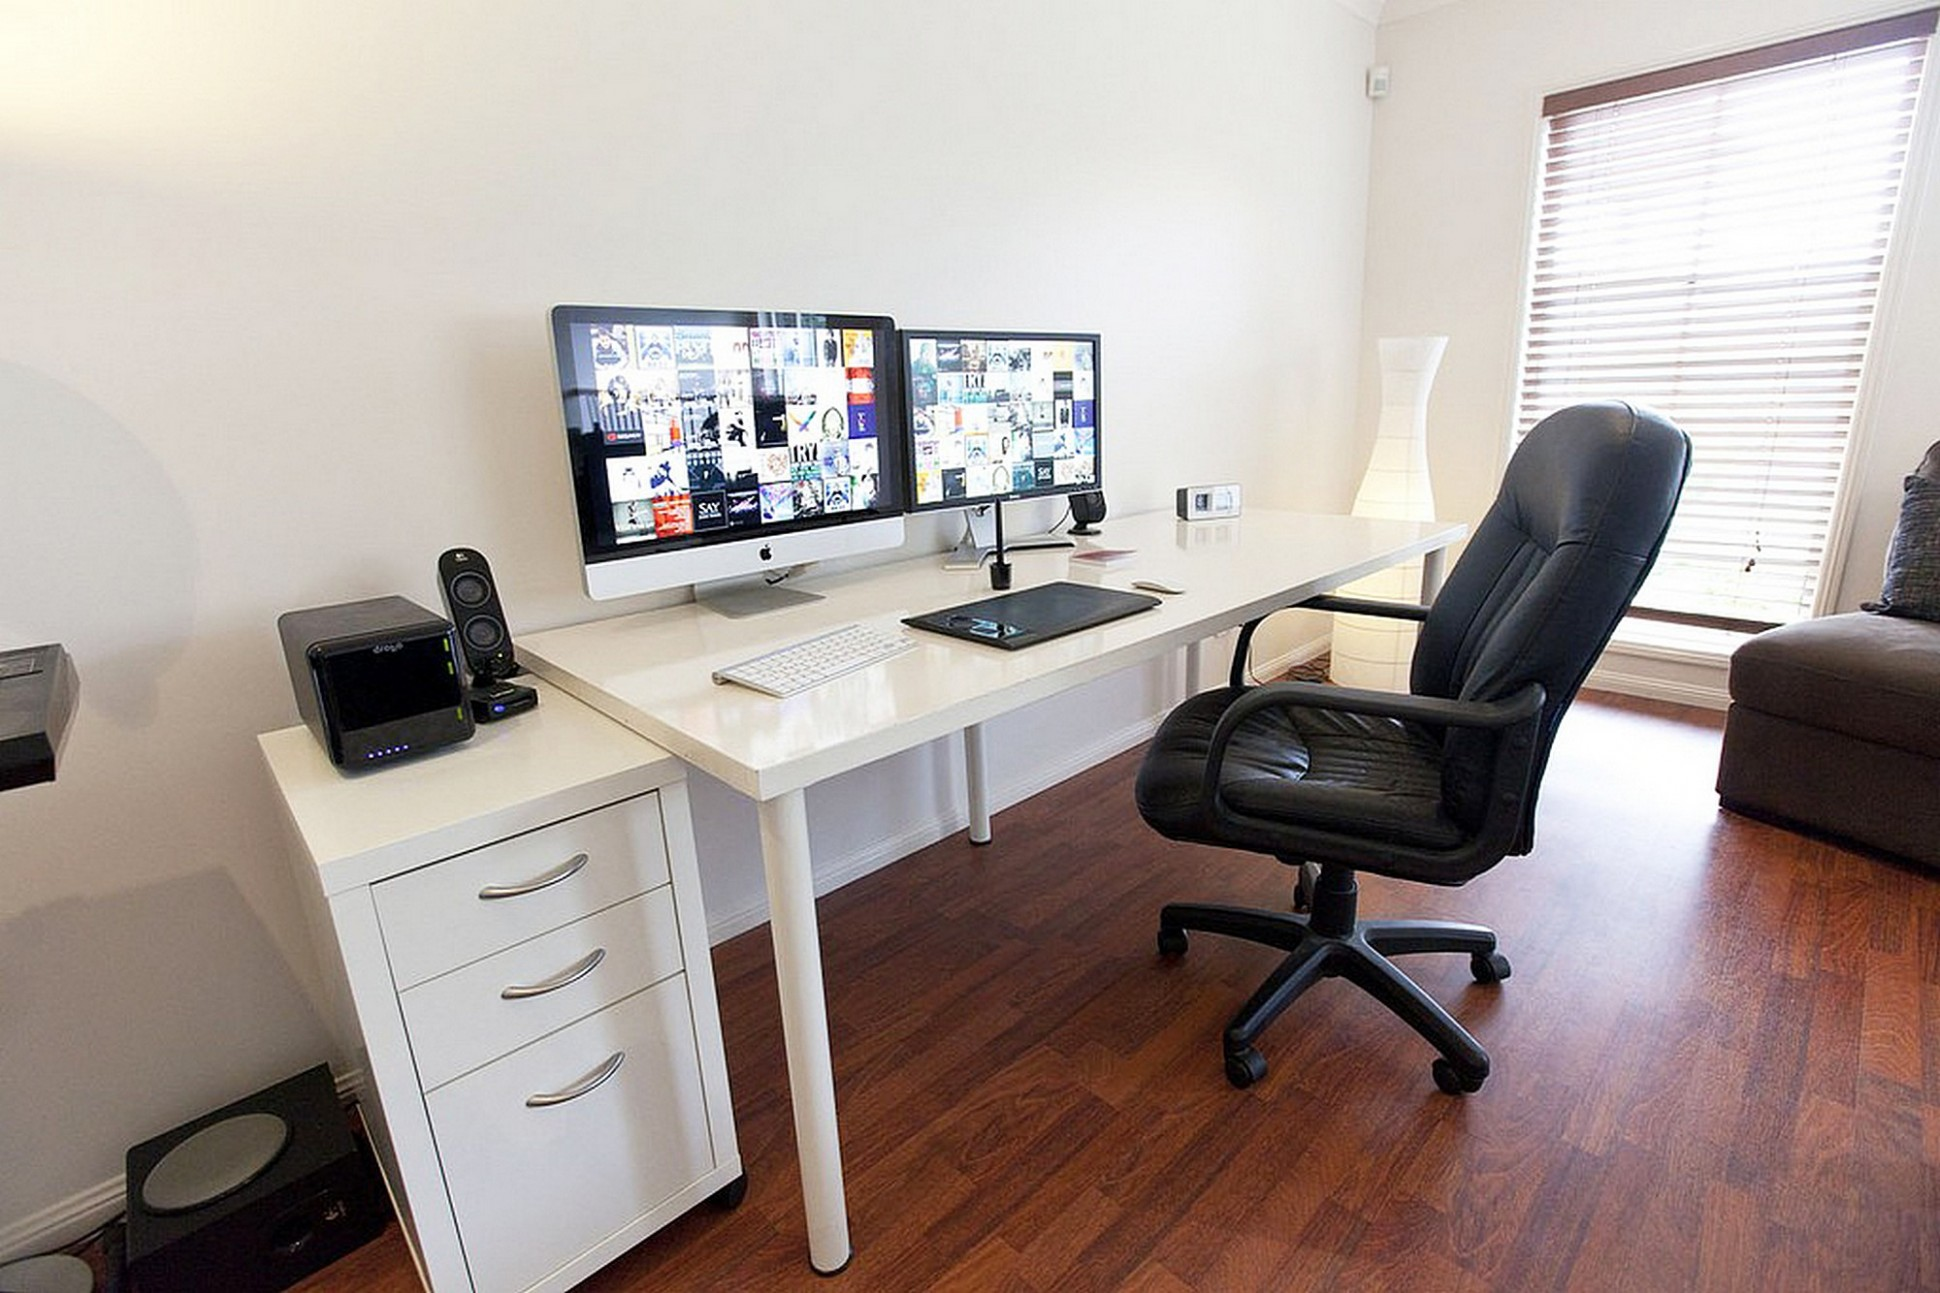 IKEA LINNMON ADILS Computer Desk setup with Drawer for Dual  - Home Office Ideas Dual Monitor